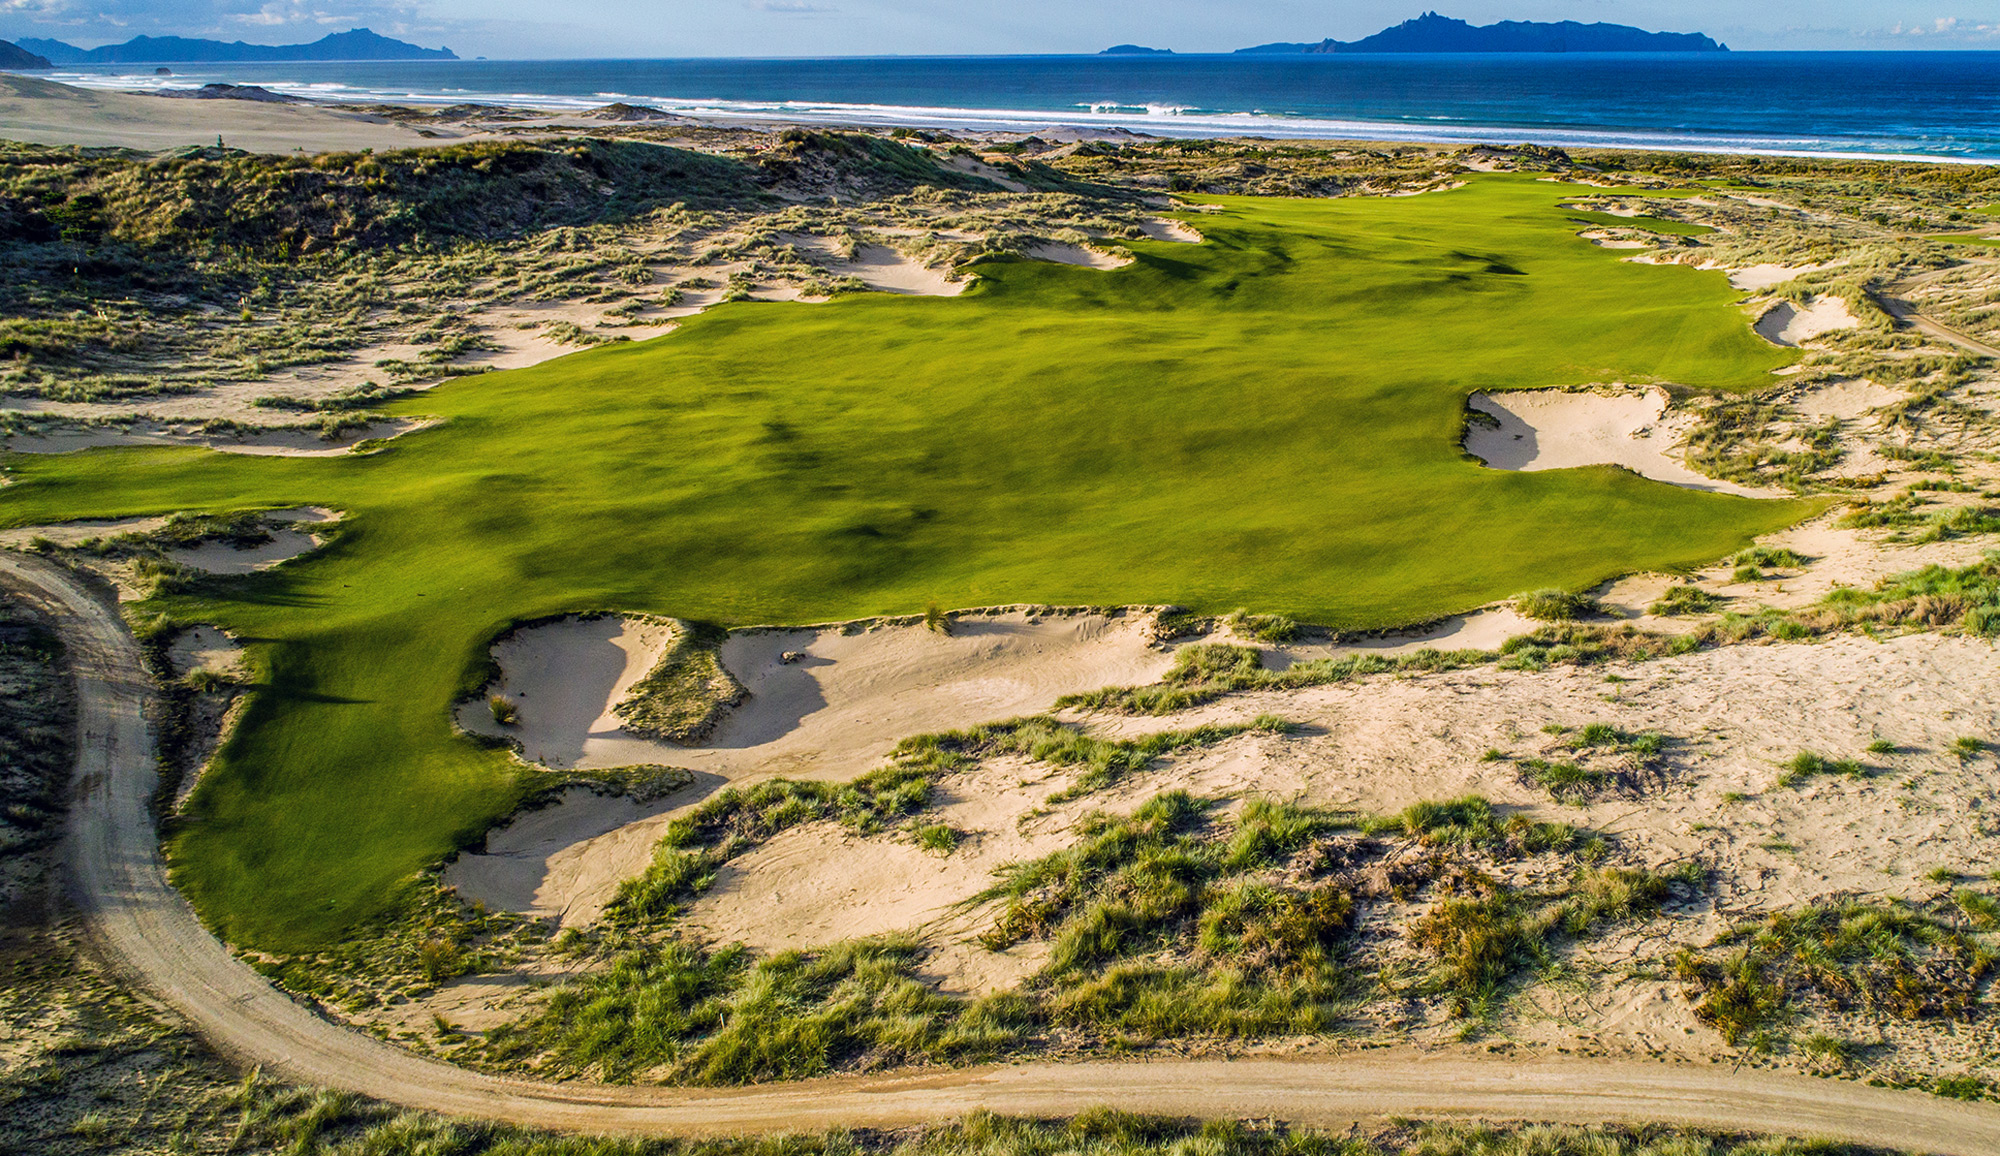 The par-4 14th plays directly toward the Hen and Chicks islands off the coast.